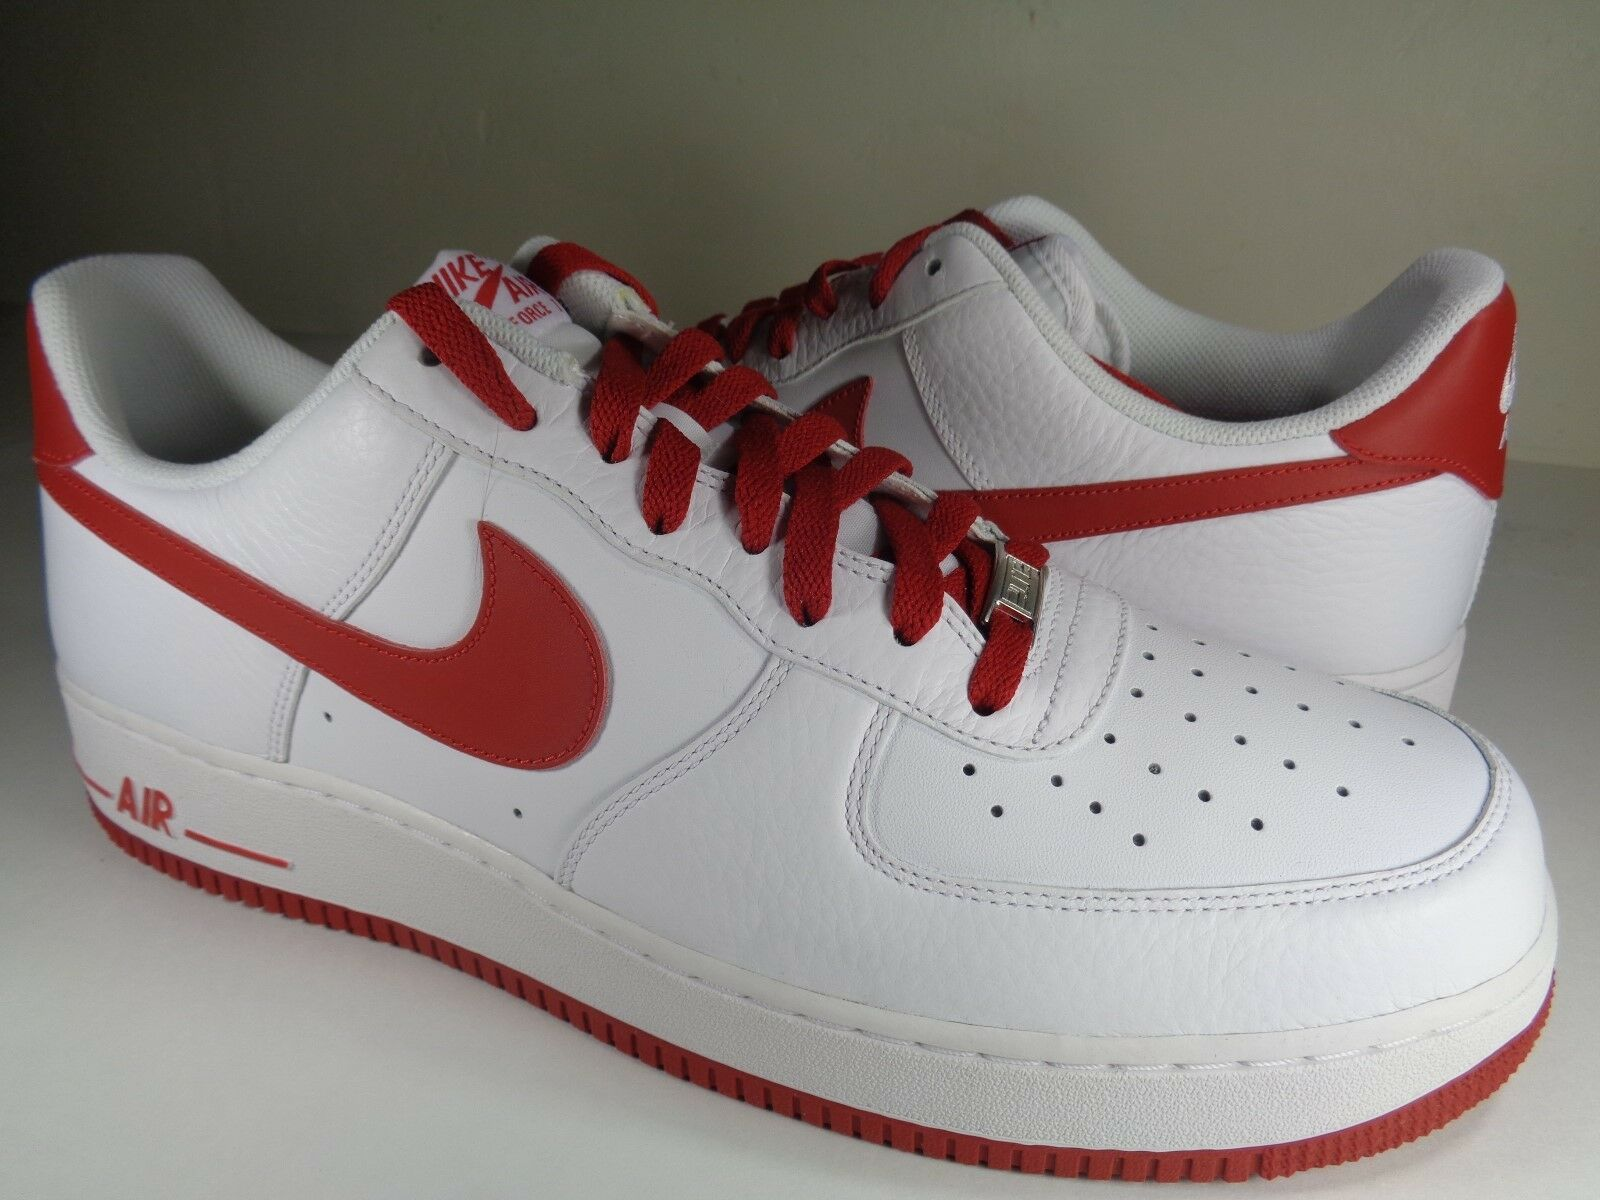 Nike Air Force 1 '07 White Varsity Red Rare SZ 14 (315122-189)